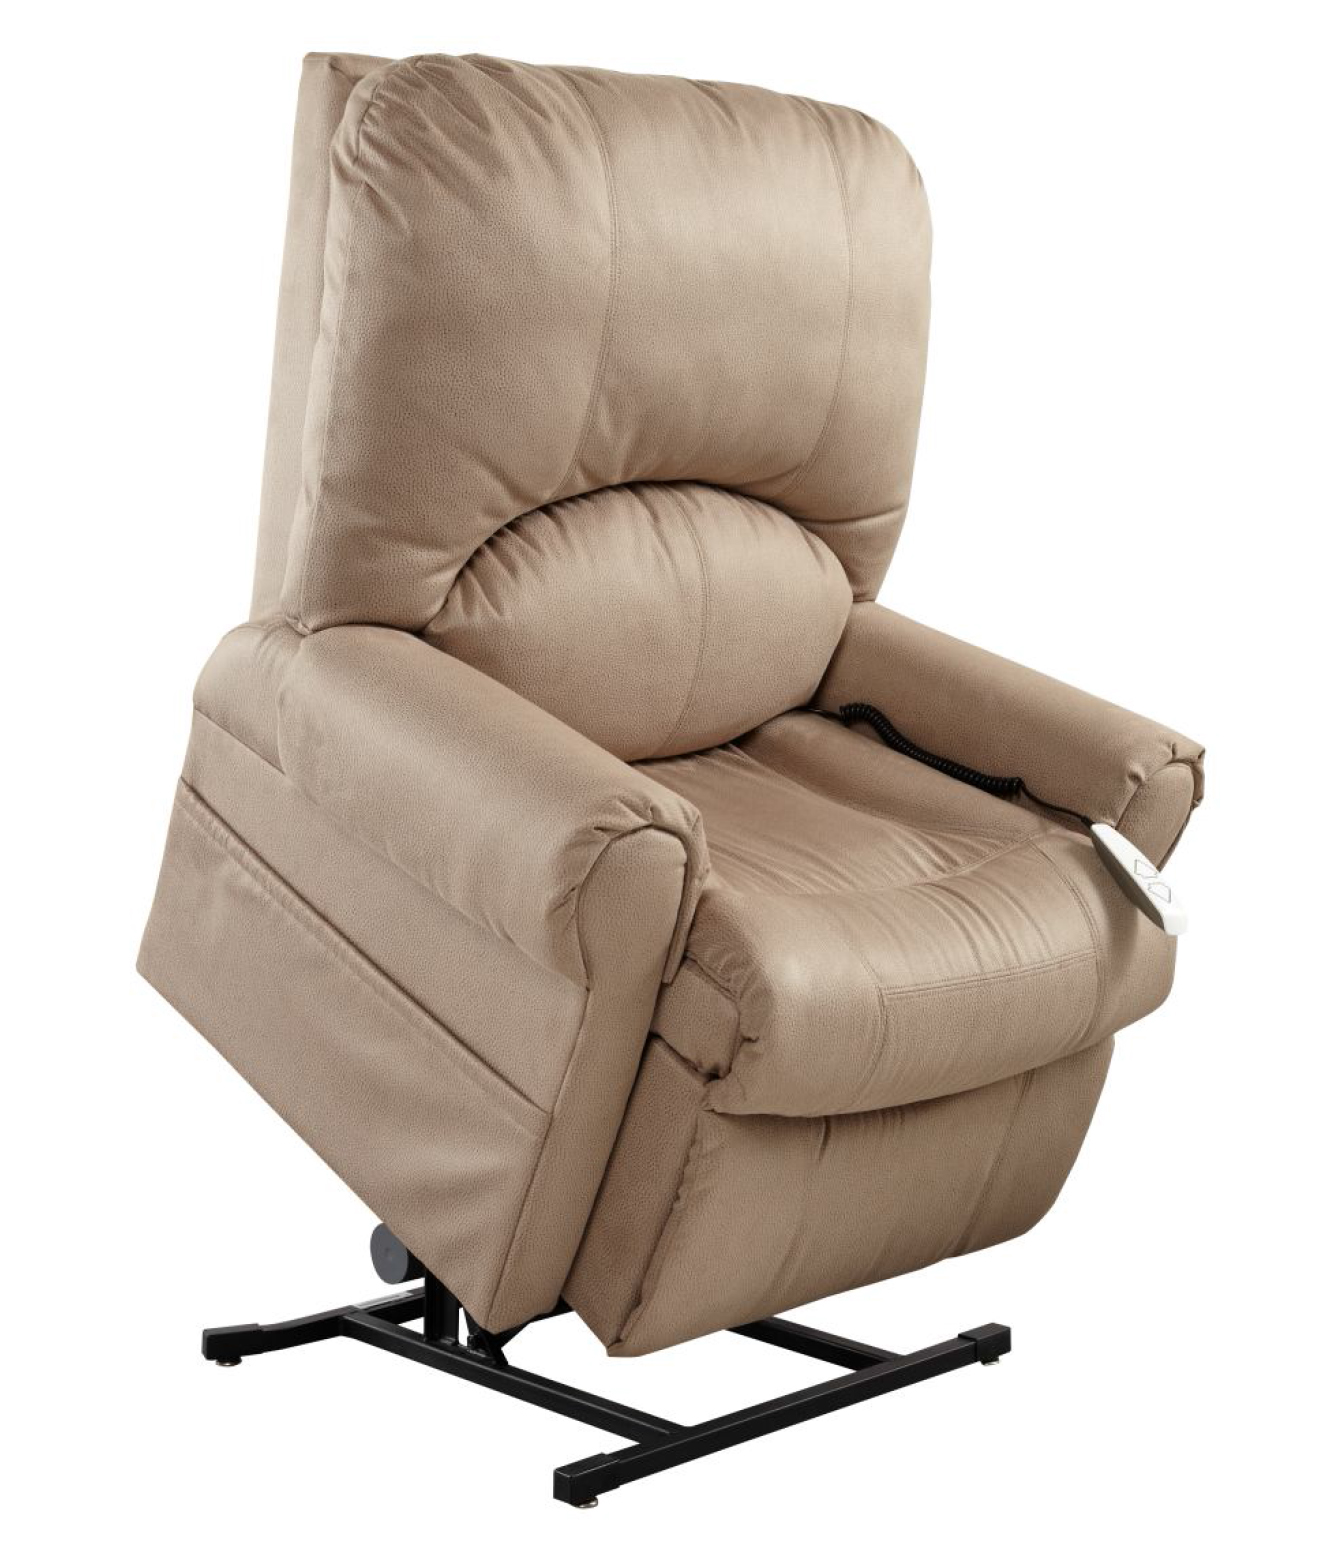 AS 6001 Torch Electric Power Recliner Lift Chair by Mega Motion